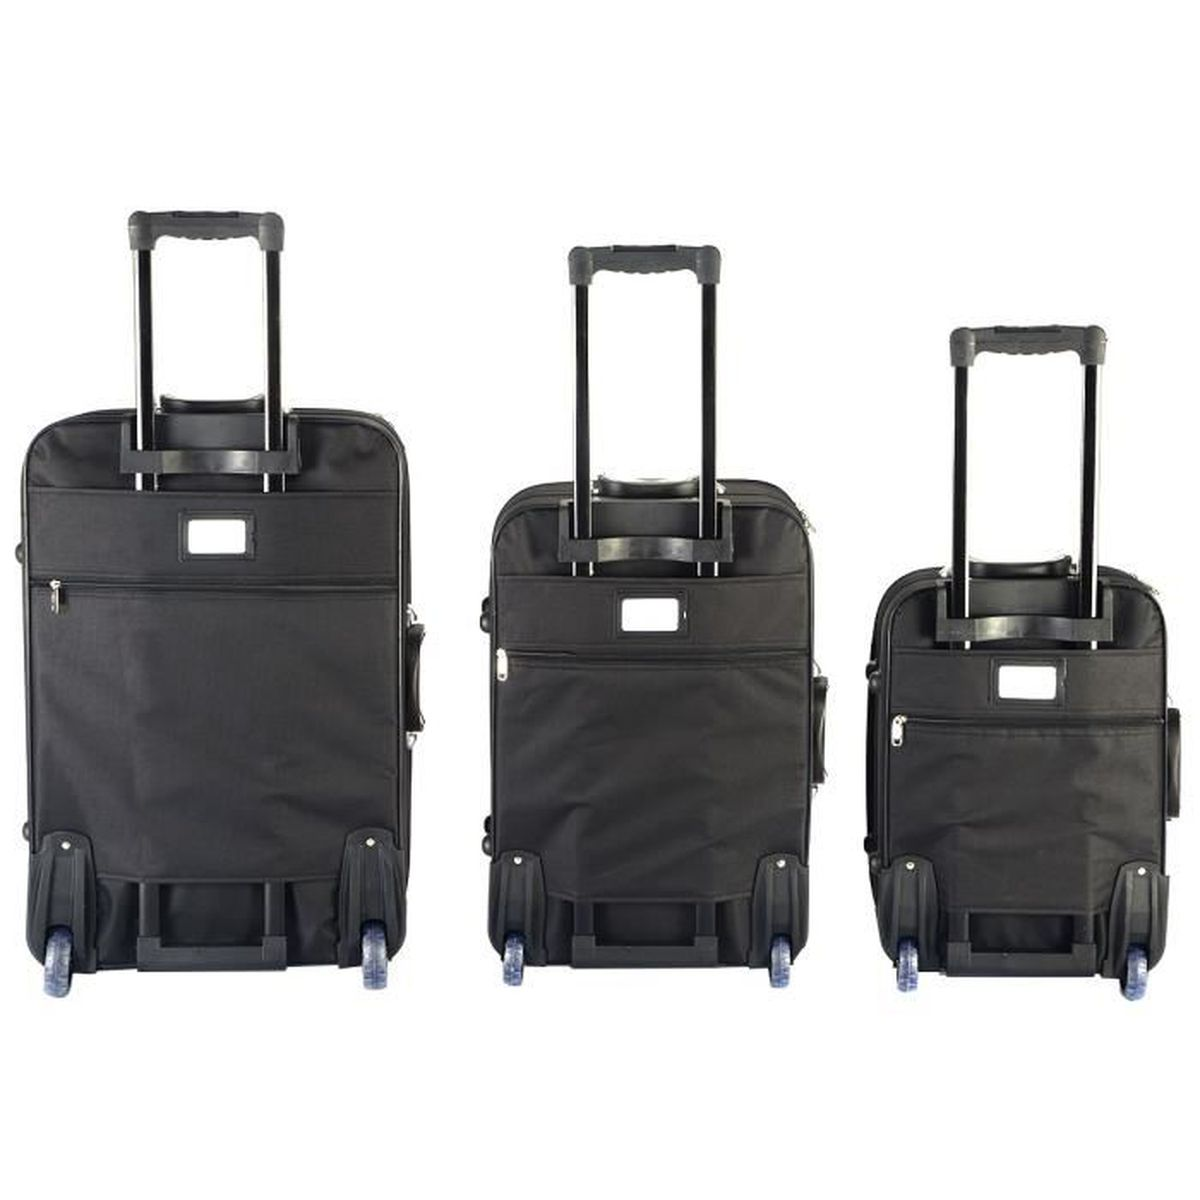 set de 3 valises trolley bagages voyage souples 2 roues. Black Bedroom Furniture Sets. Home Design Ideas